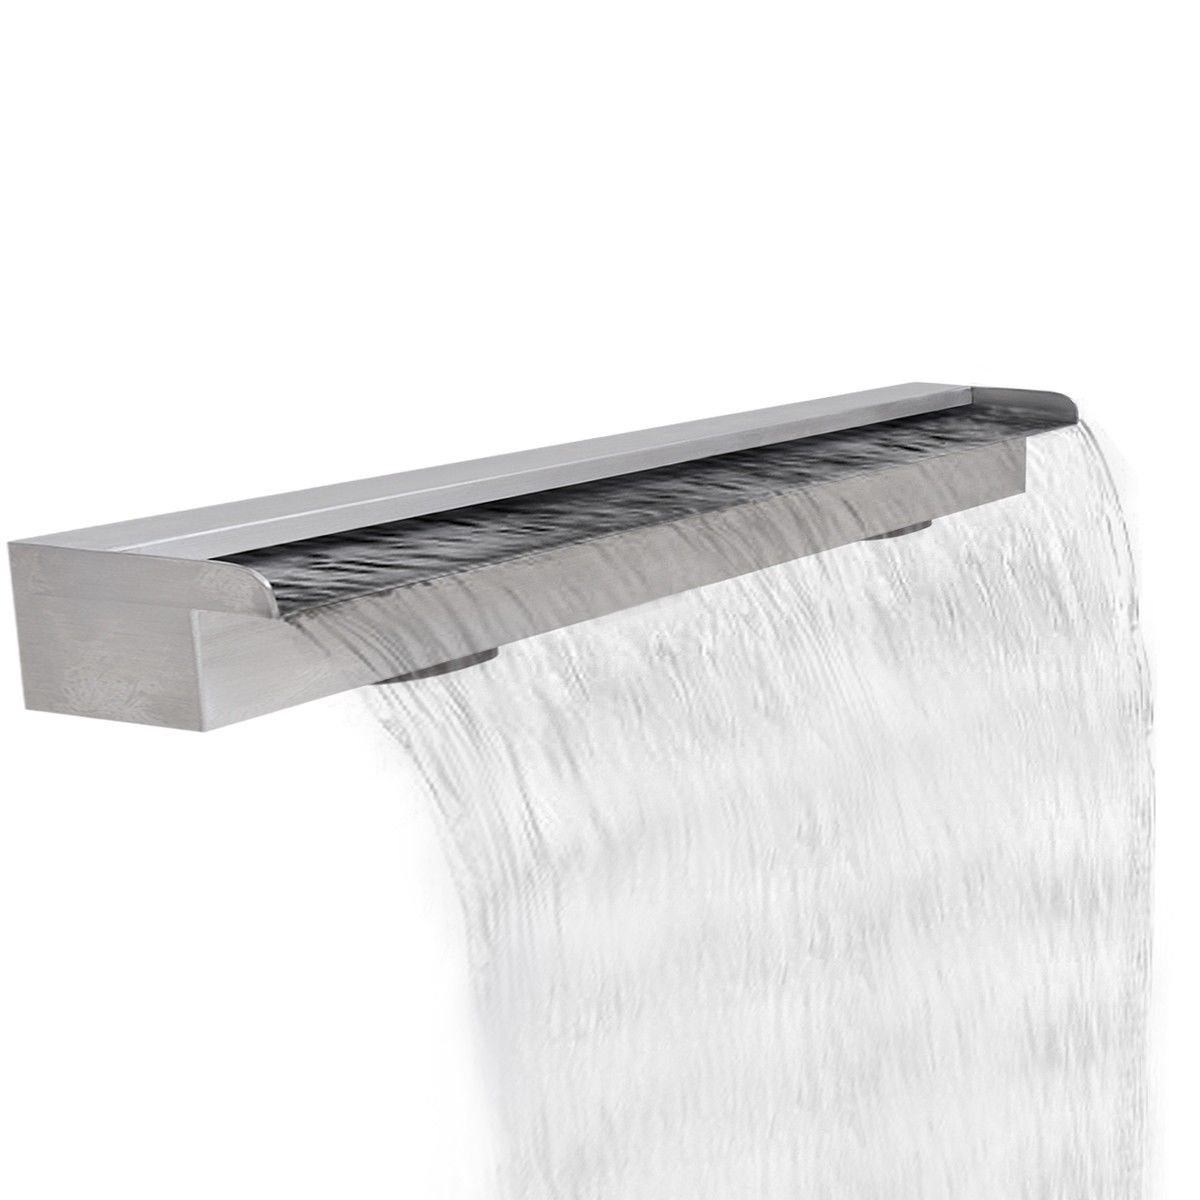 47.2'' Stainless Steel Sheer Descent Cascade Pool Water Fountain Feature by HomeSweet